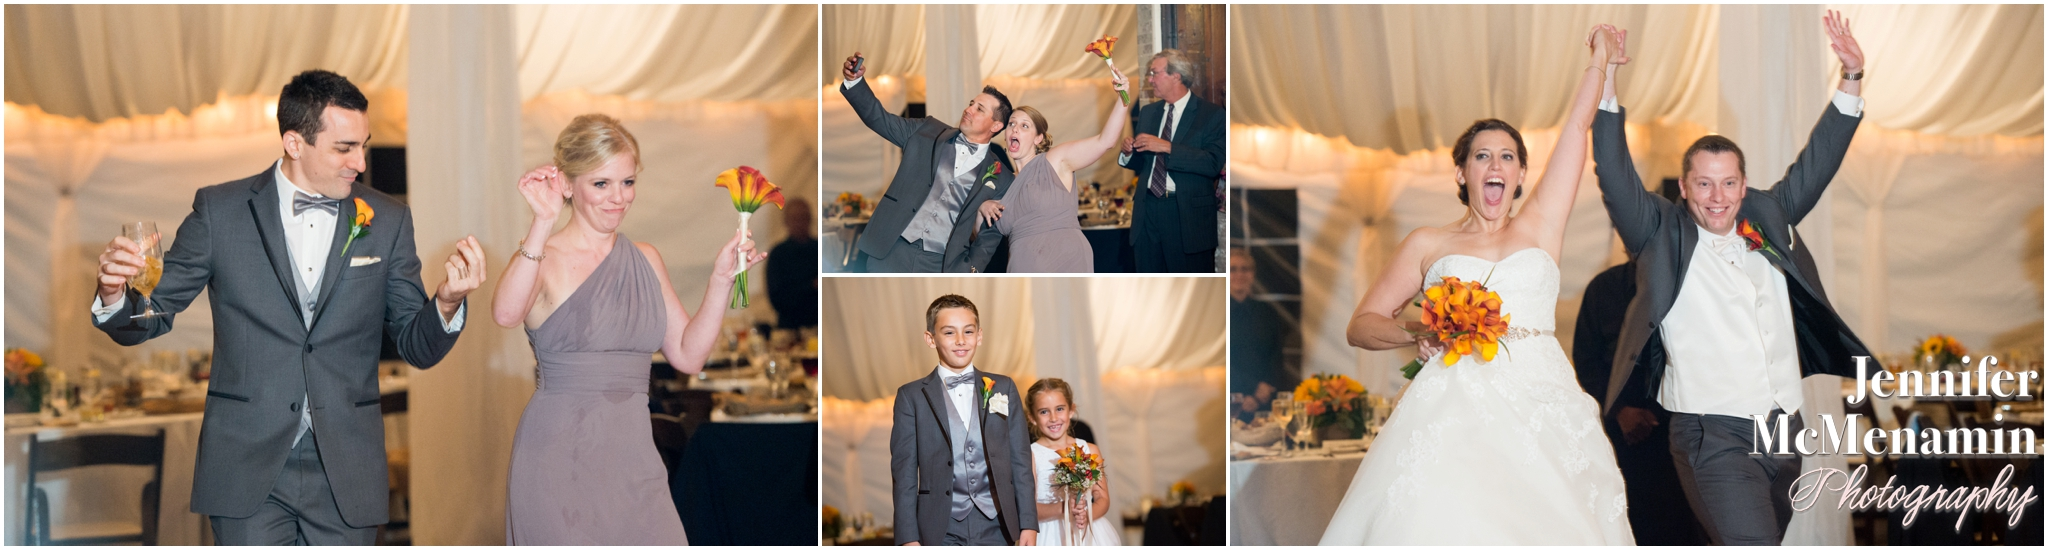 074-HenningMiller_02610-0547_JenniferMcMenaminPhotography_Evergreen-Museum-And-Carriage-House_Evergreen-wedding_Baltimore-wedding-photographer_Baltimore-wedding-photography